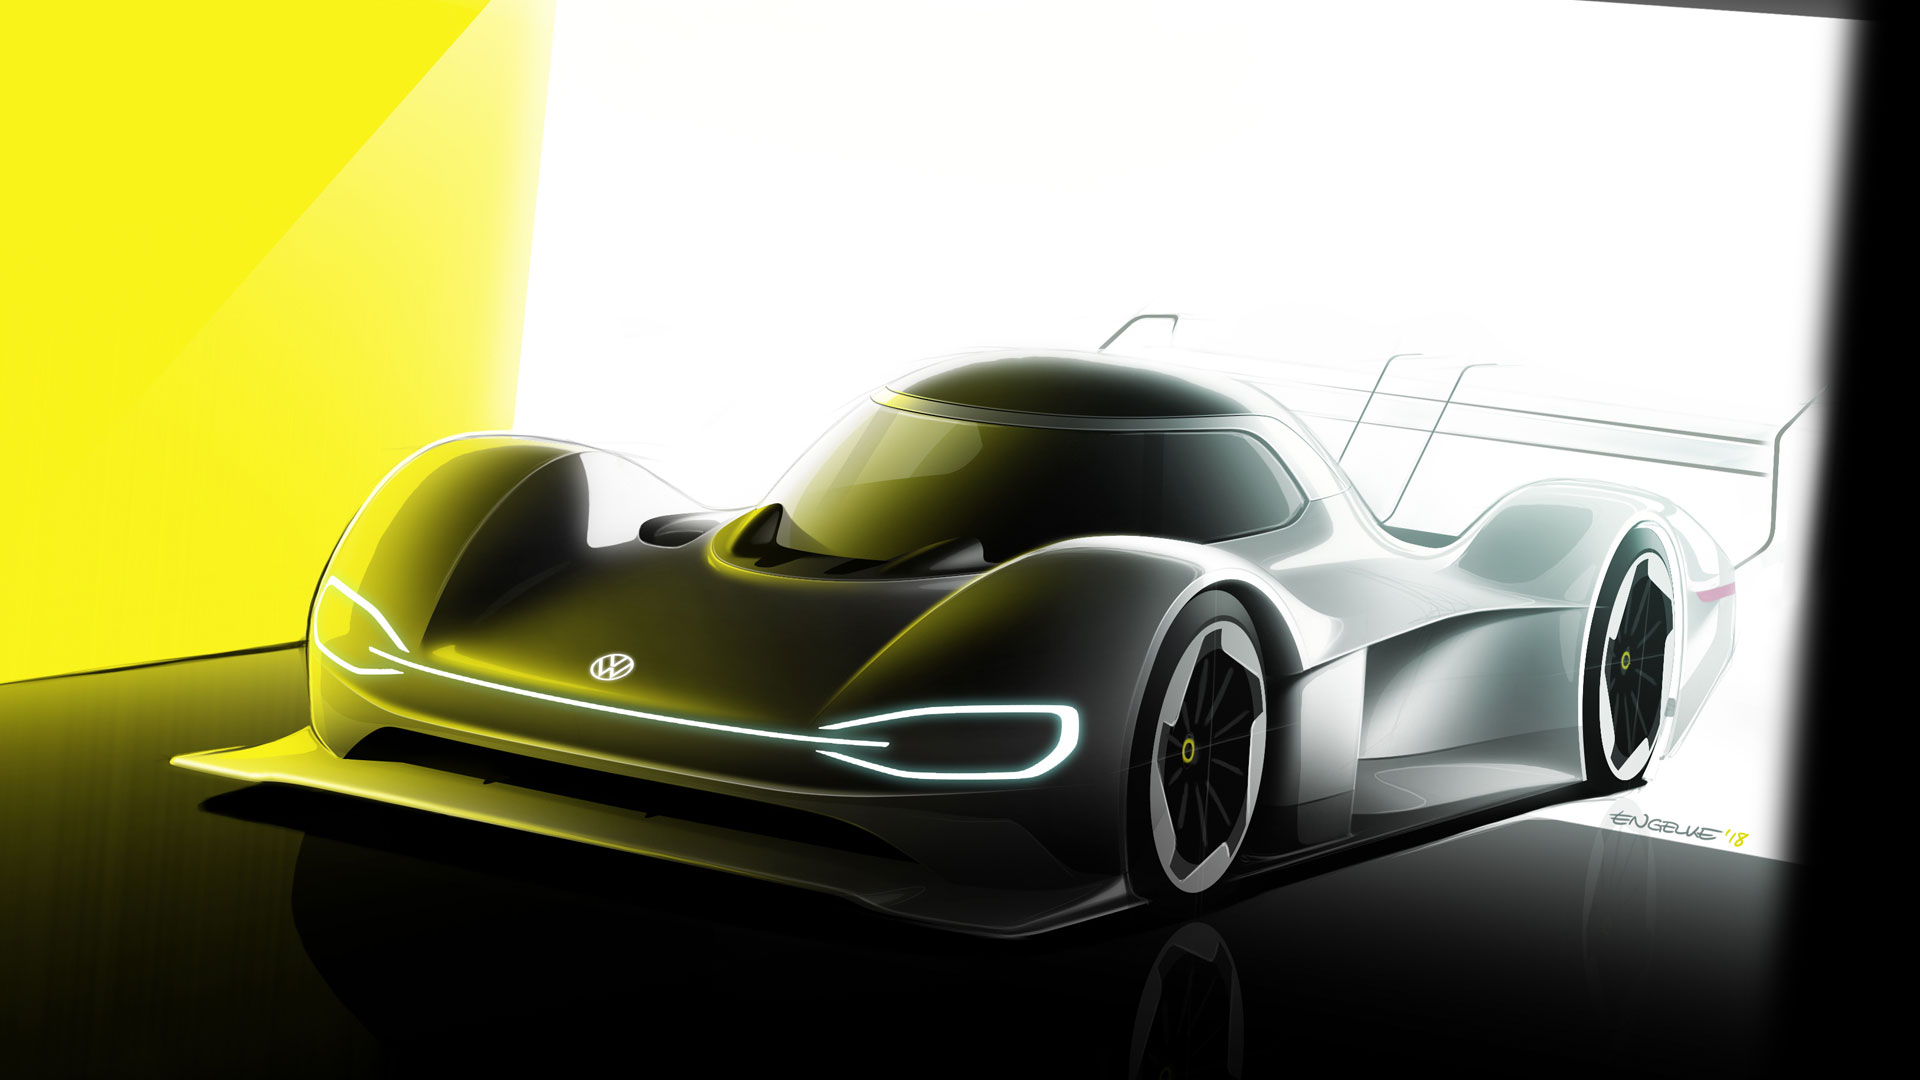 Volkswagen ID. R electric car